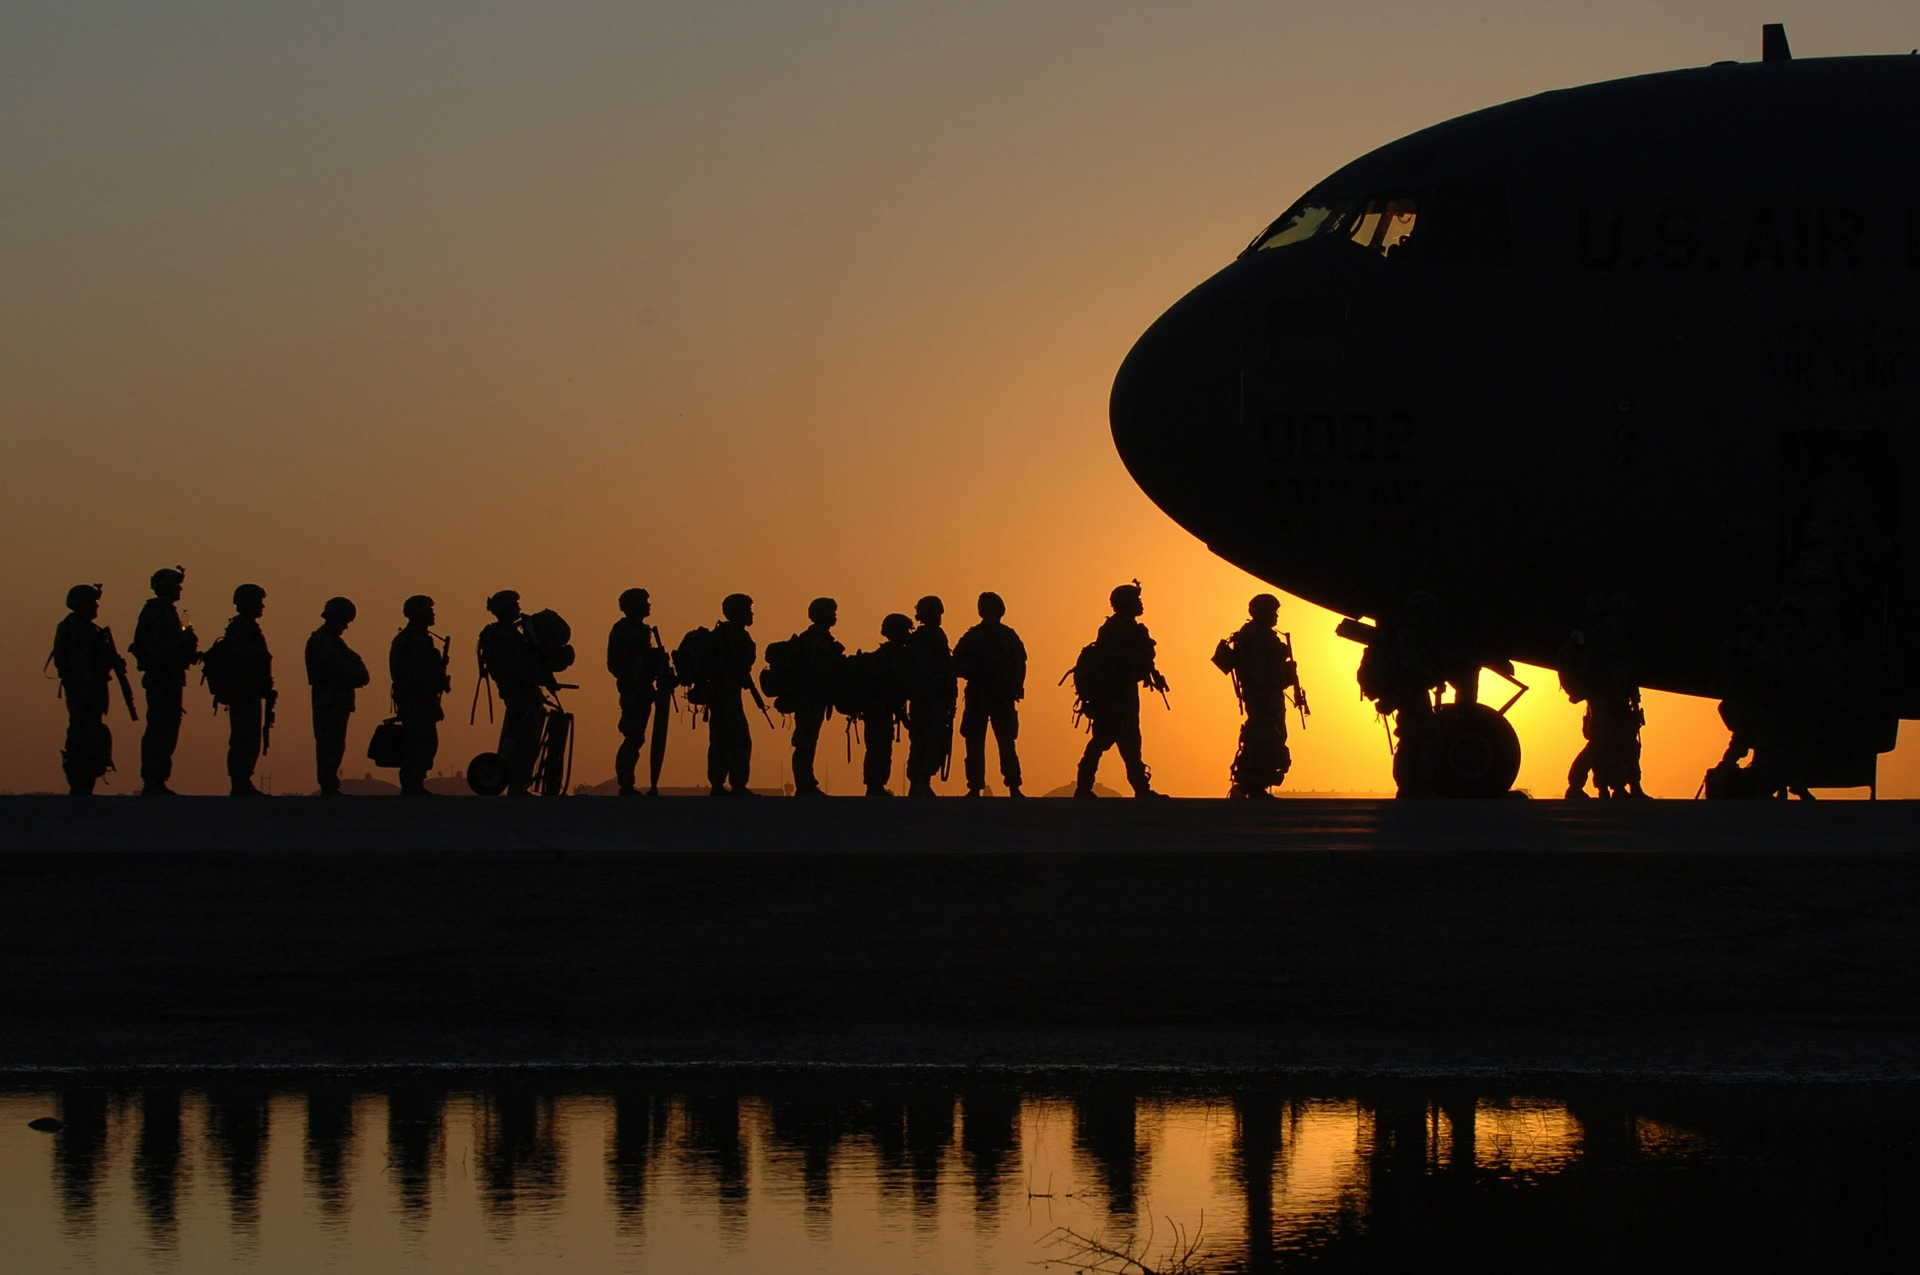 military divorce in florida - image shows military boarding a plane